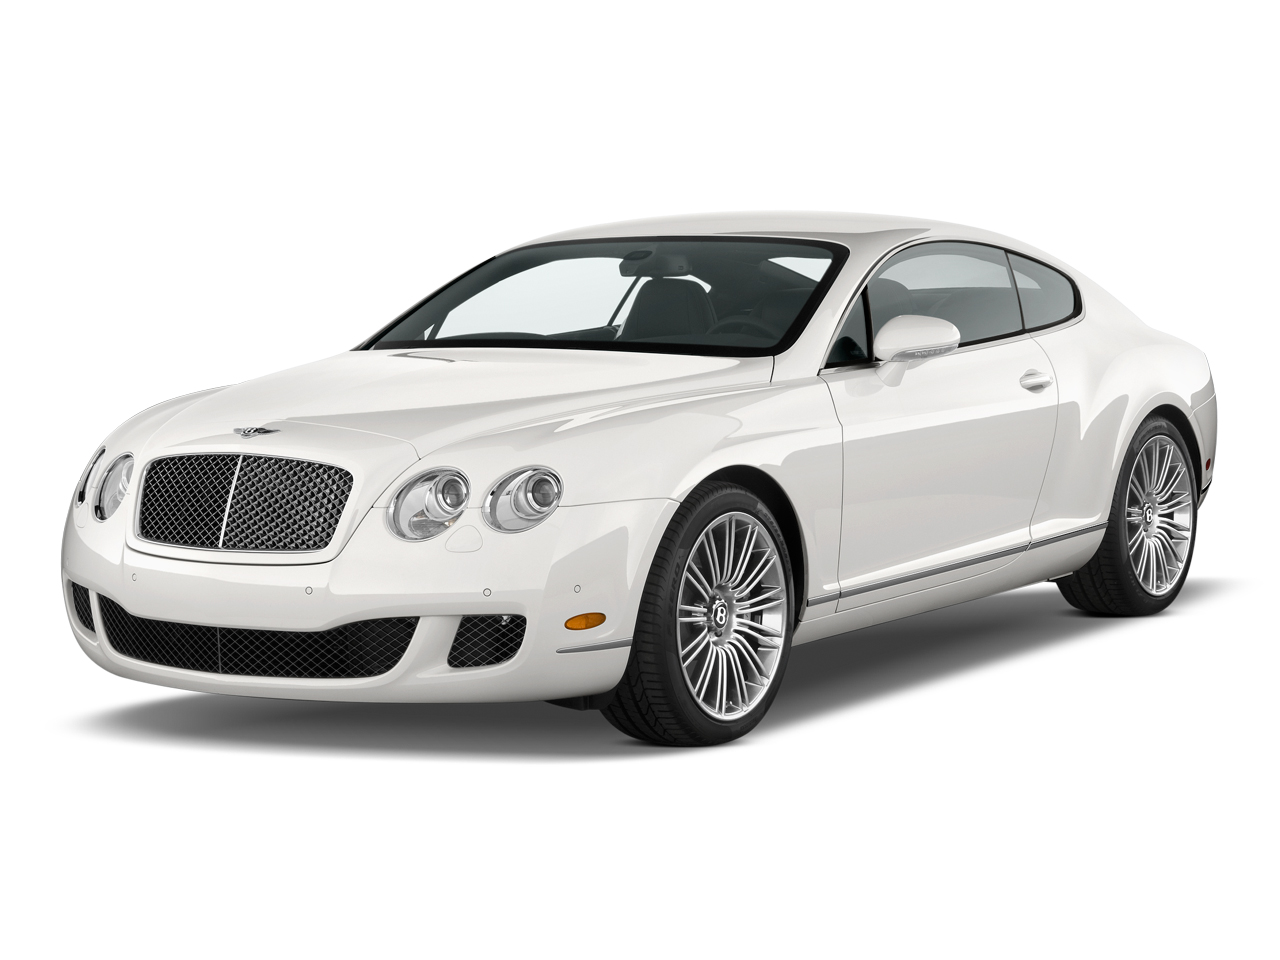 2009 Bentley Continental Gt #17